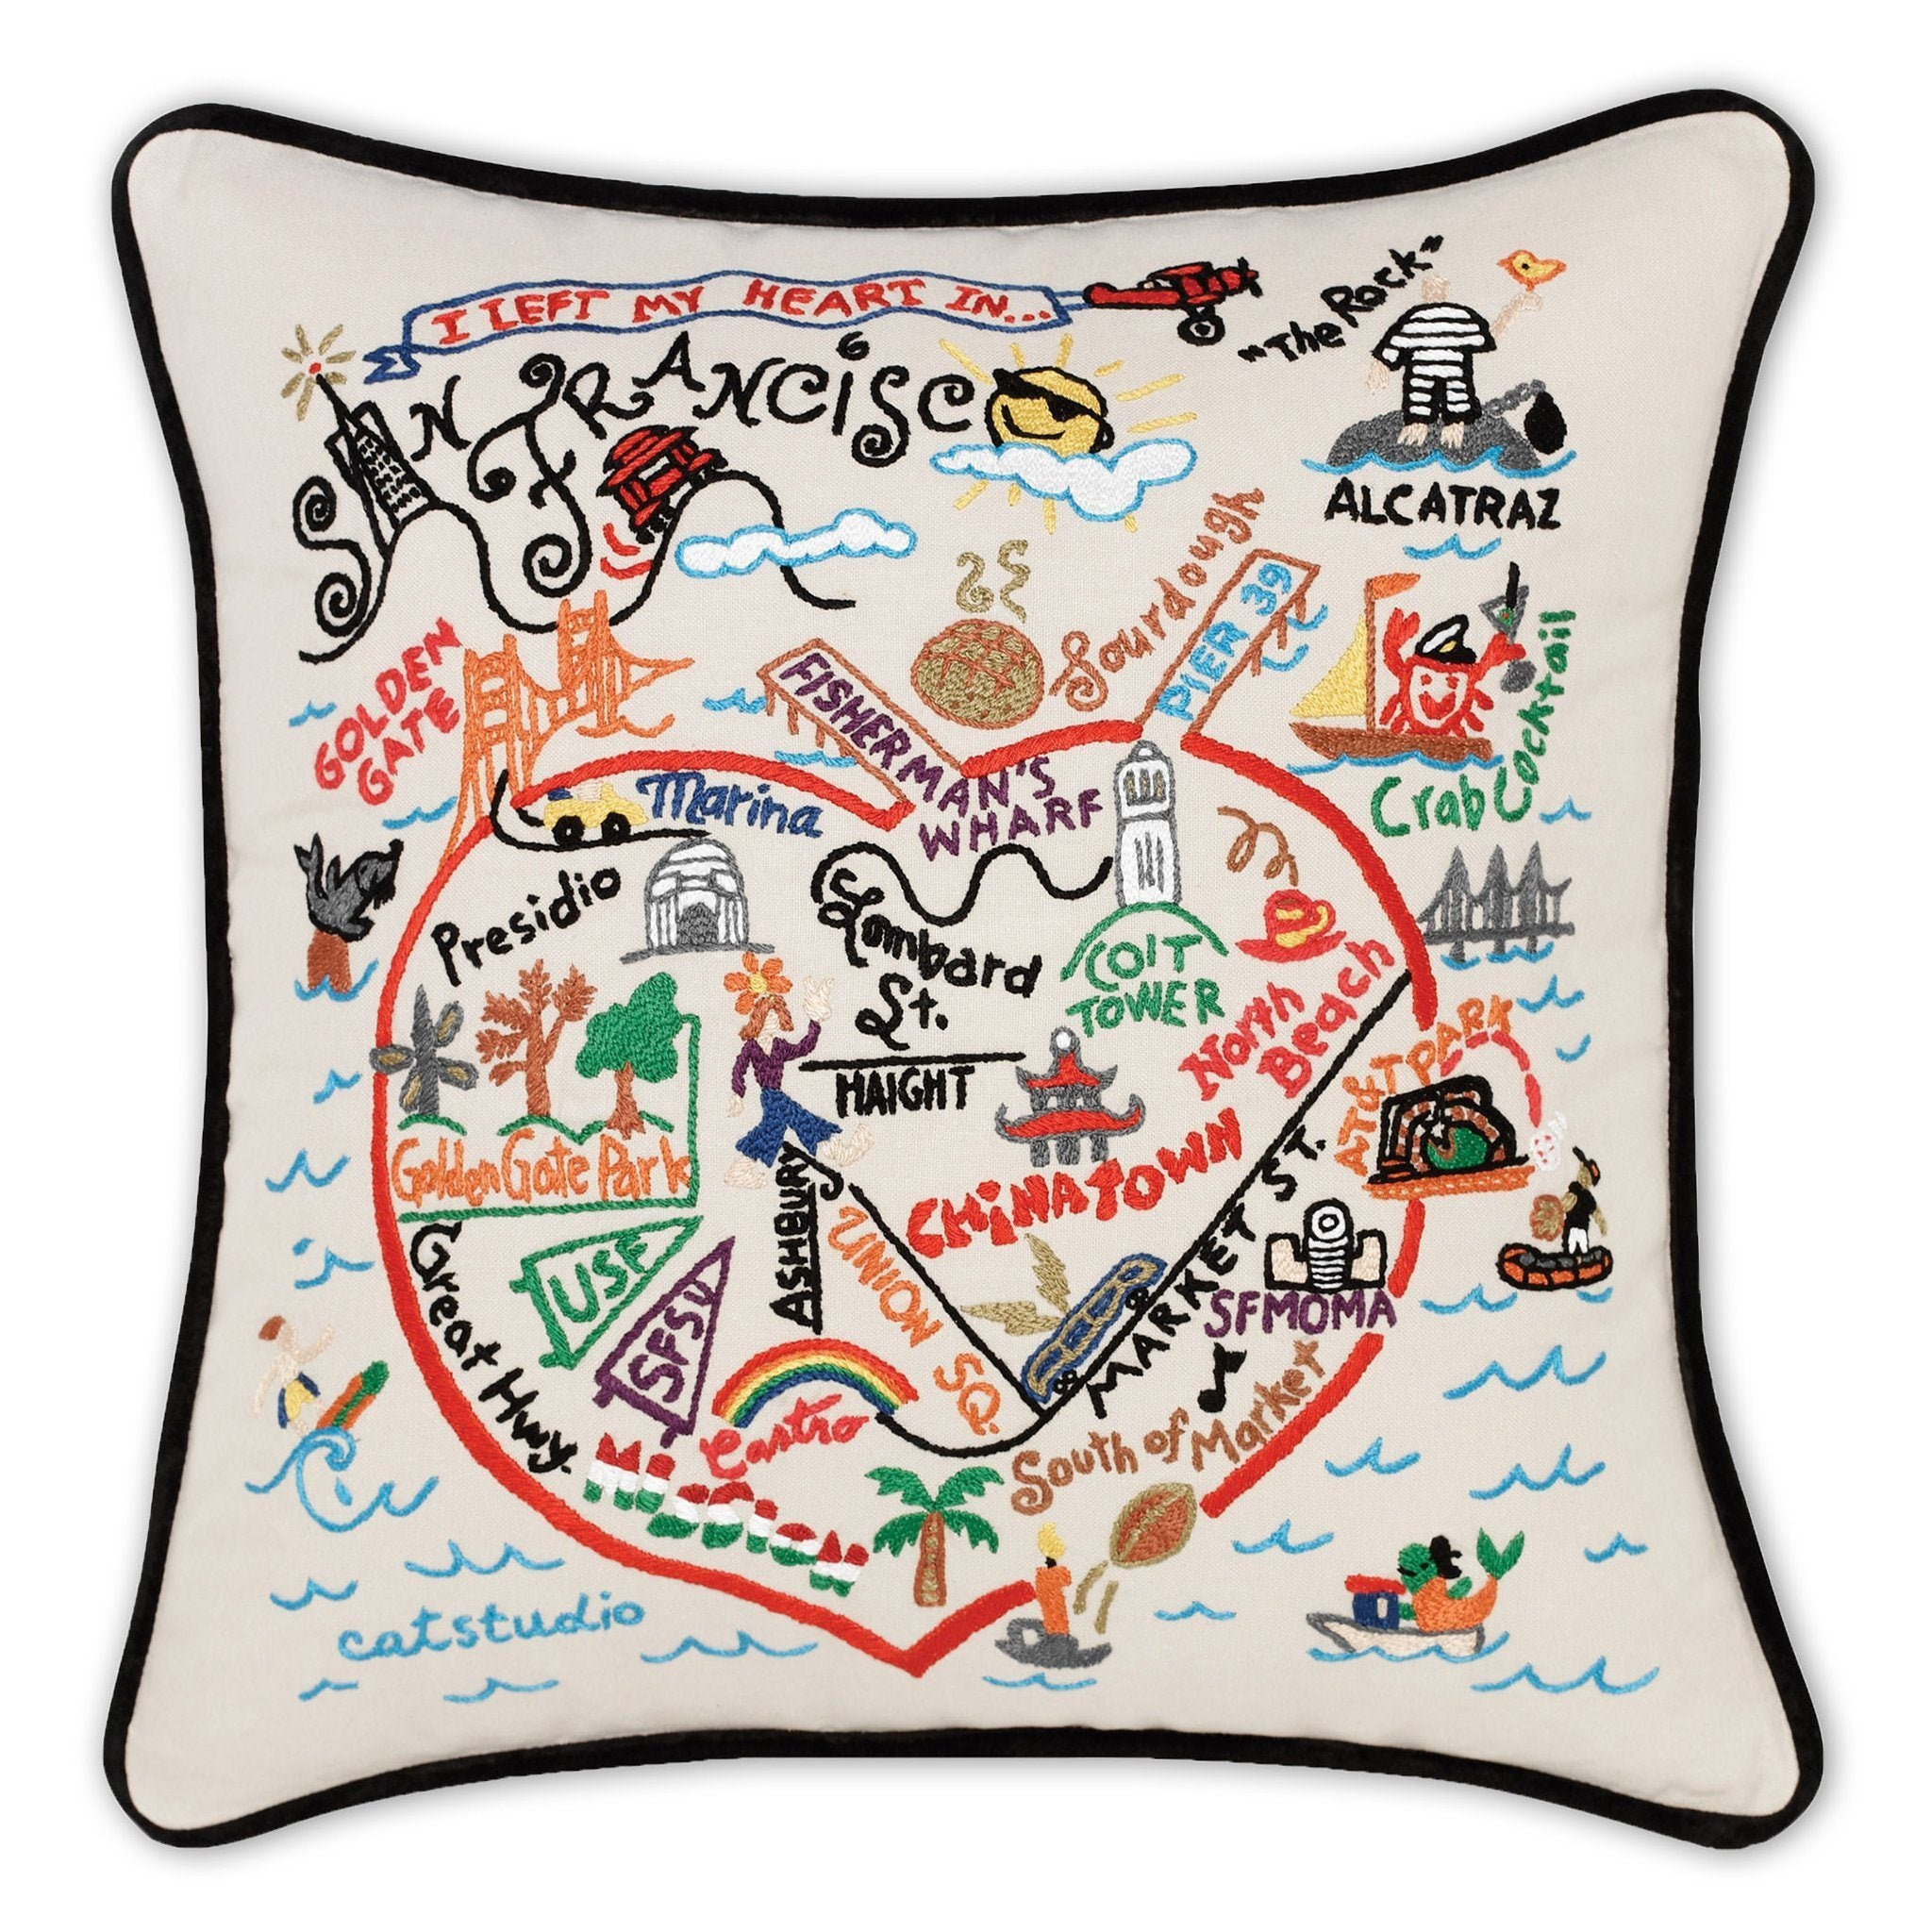 San Francisco Hand-Embroidered Pillow